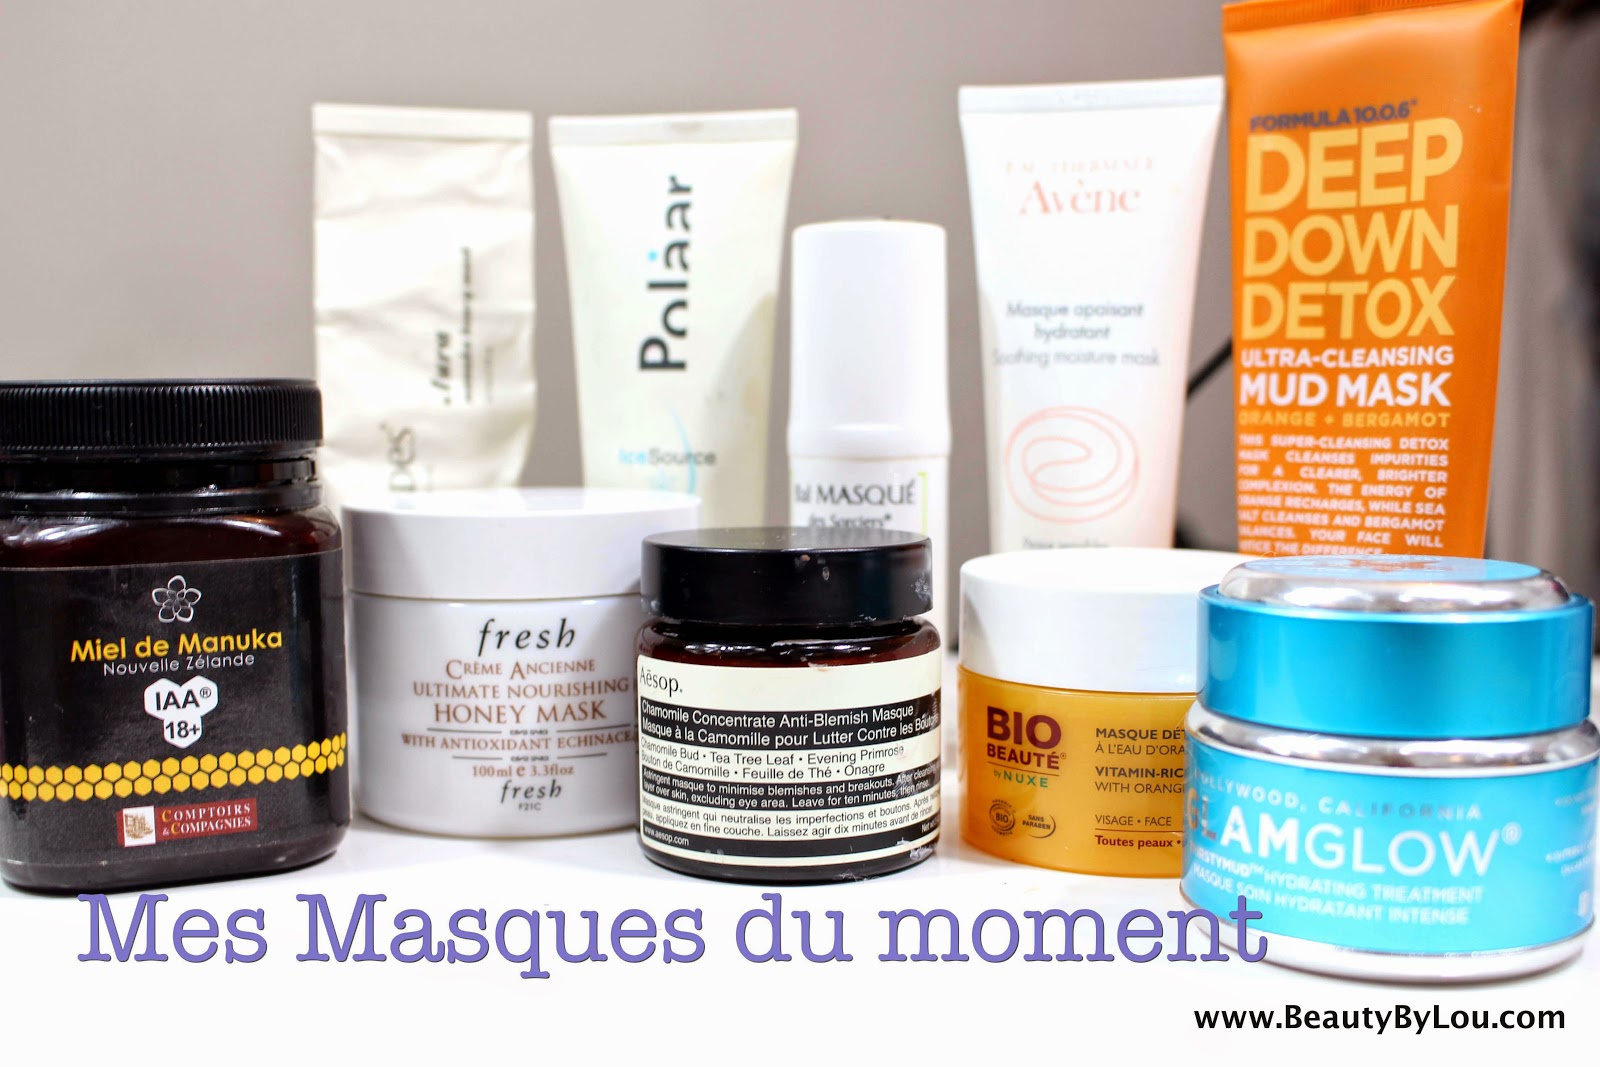 http://www.beautybylou.com/2015/04/je-suis-une-masque-addict.html